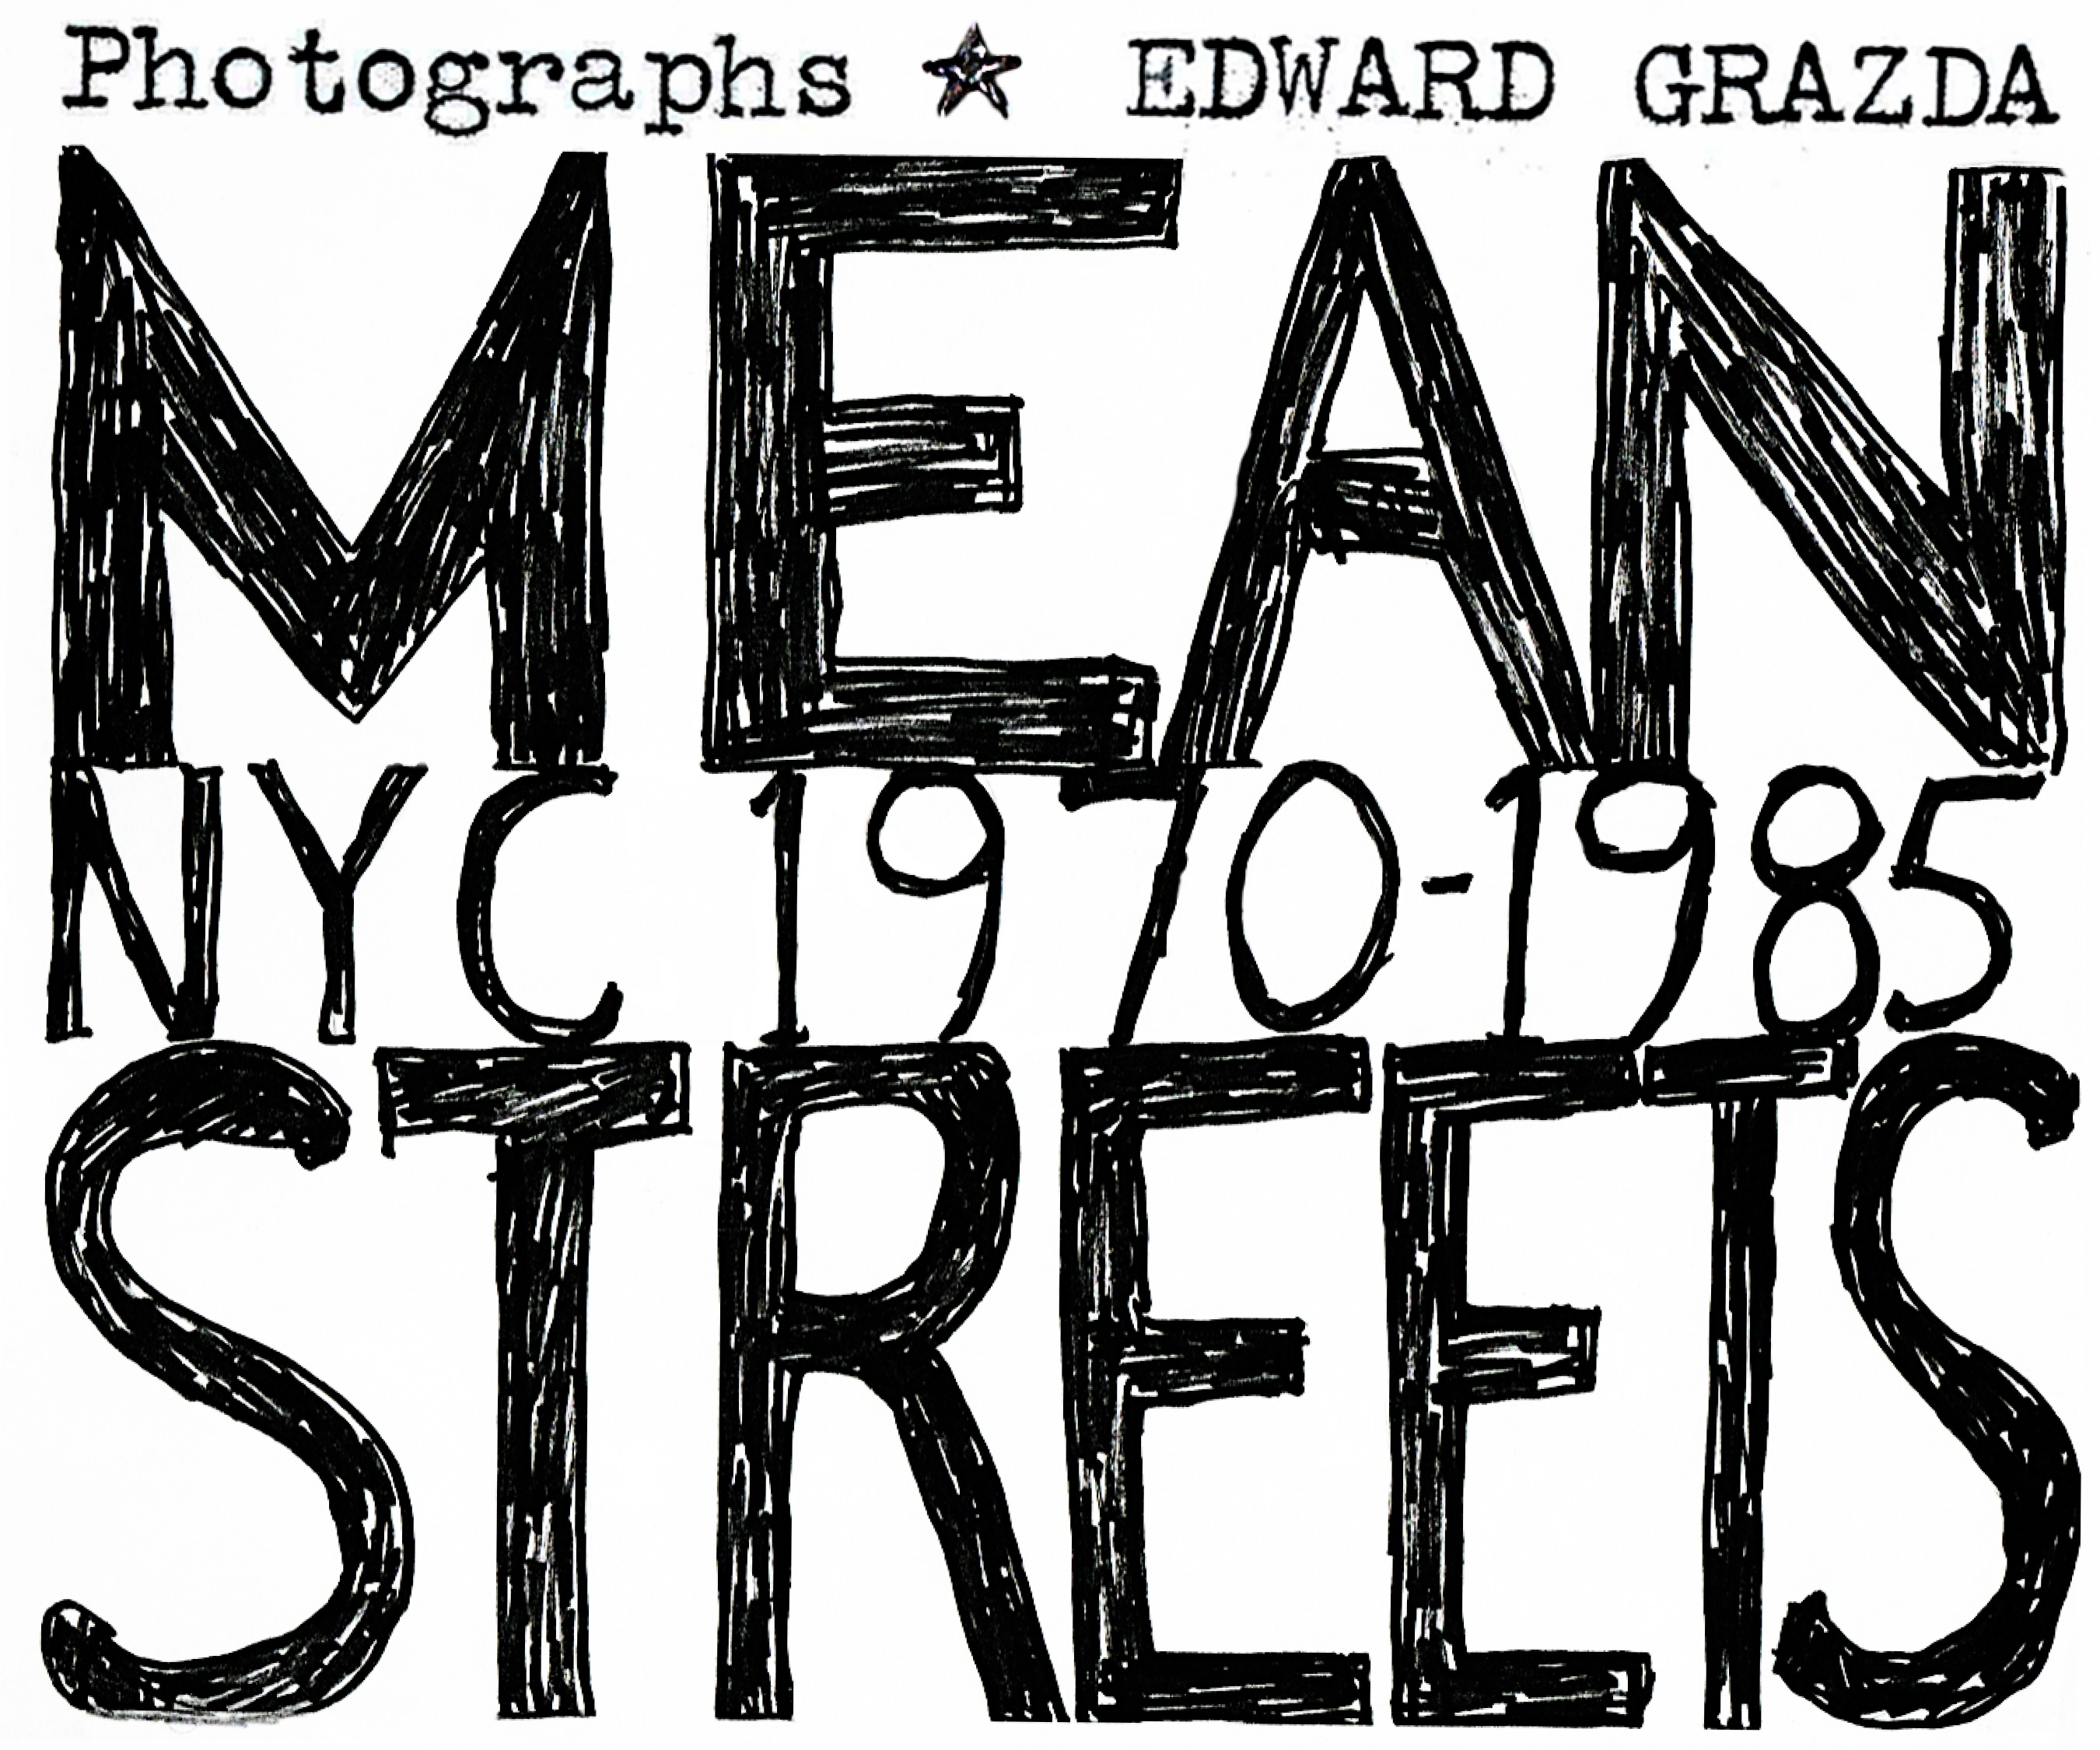 mean streets nyc 1970 1985 powerhouse books NYC Police 1970s look inside